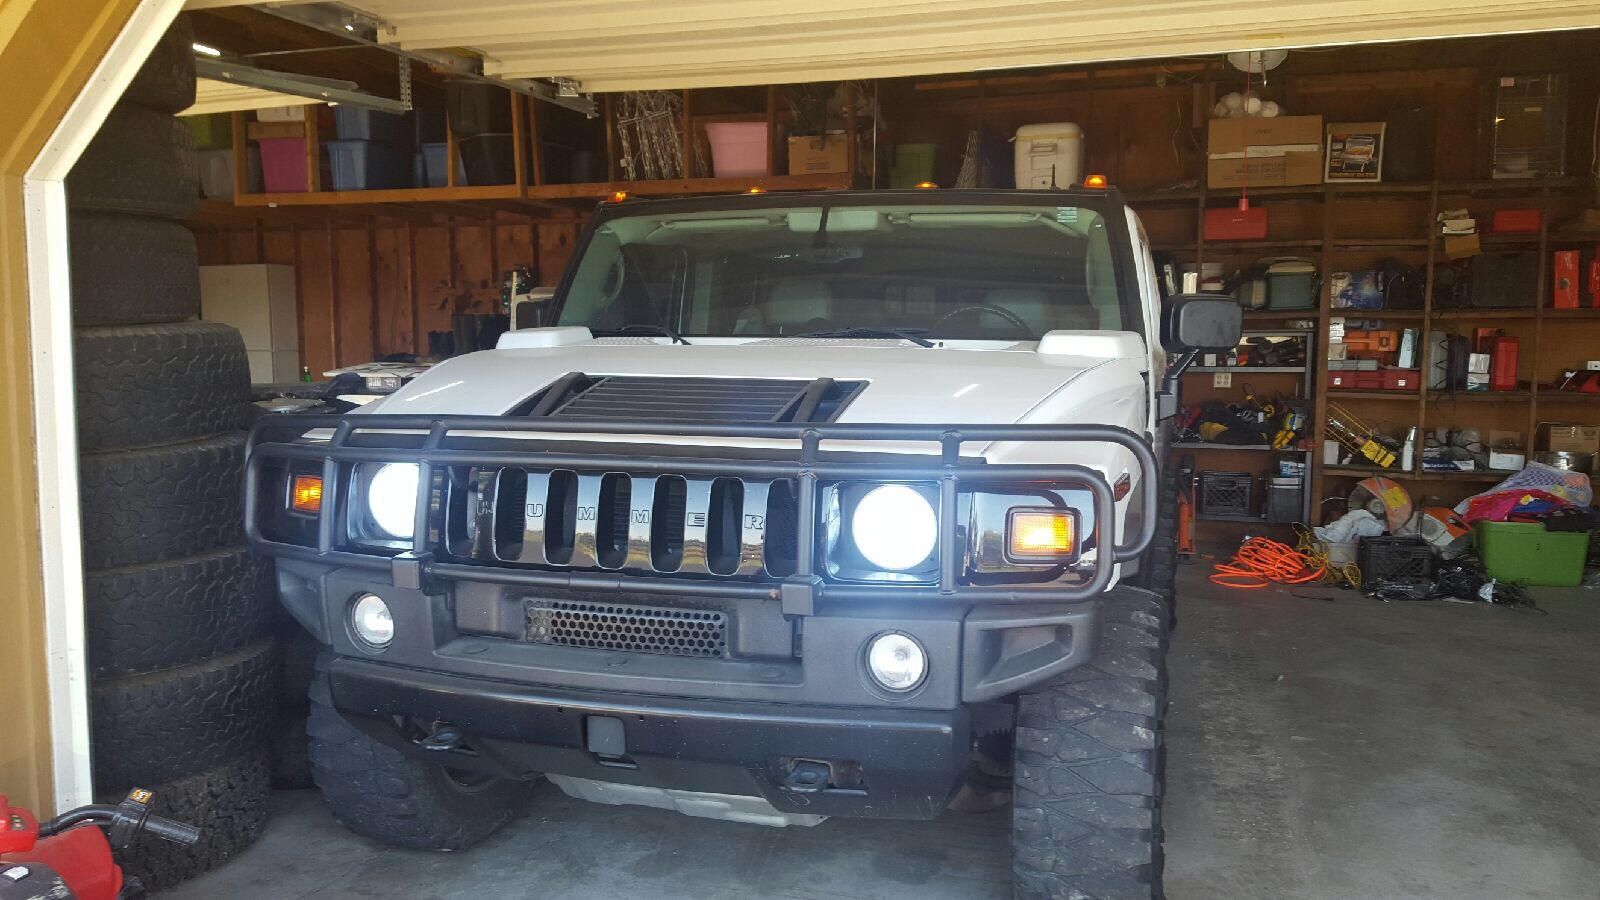 hight resolution of 1996 h1 hummer for sale video image jpg